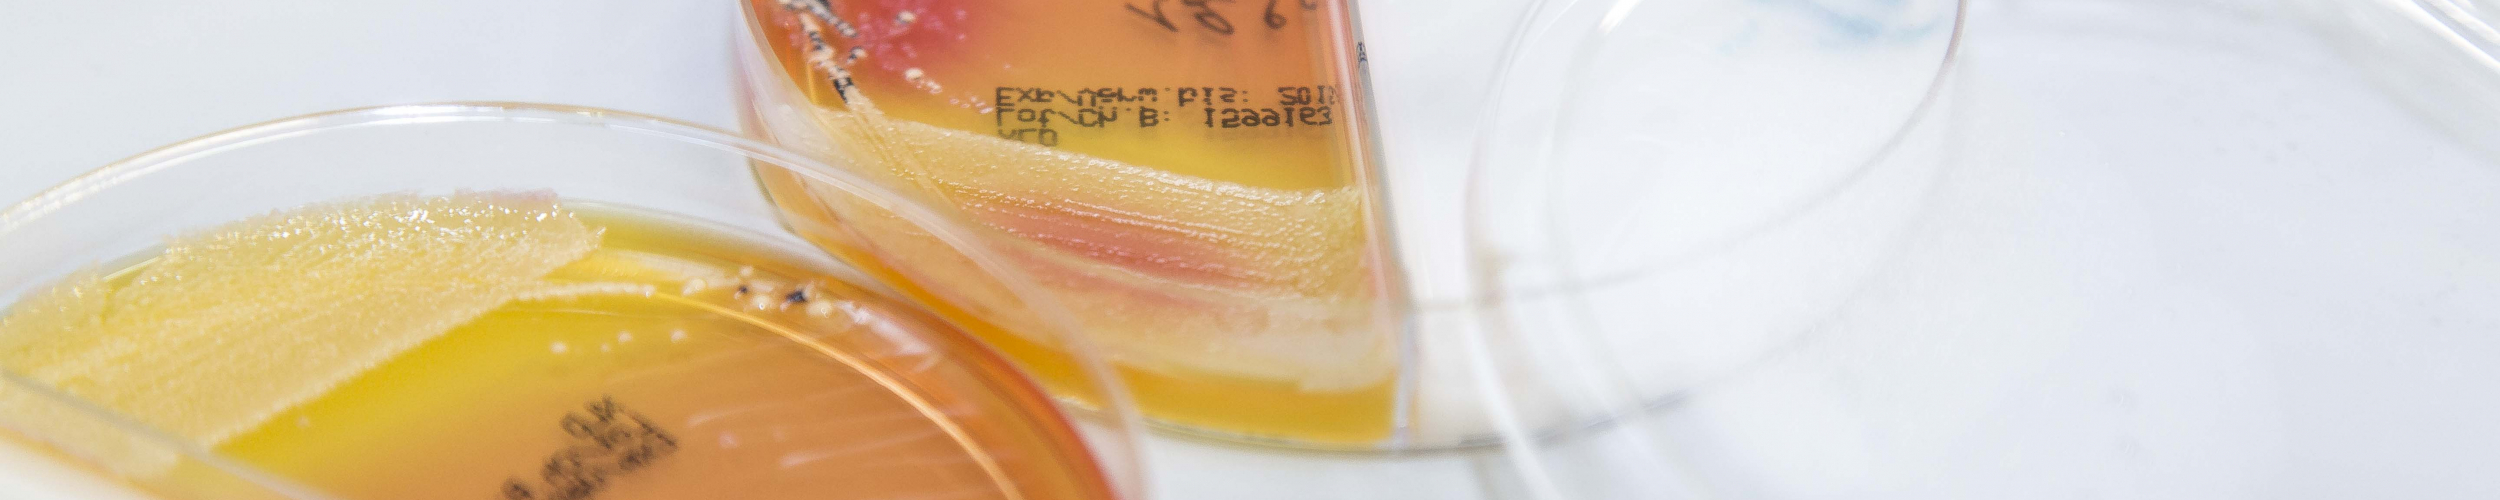 BACTERIOLOGICAL RESEARCH